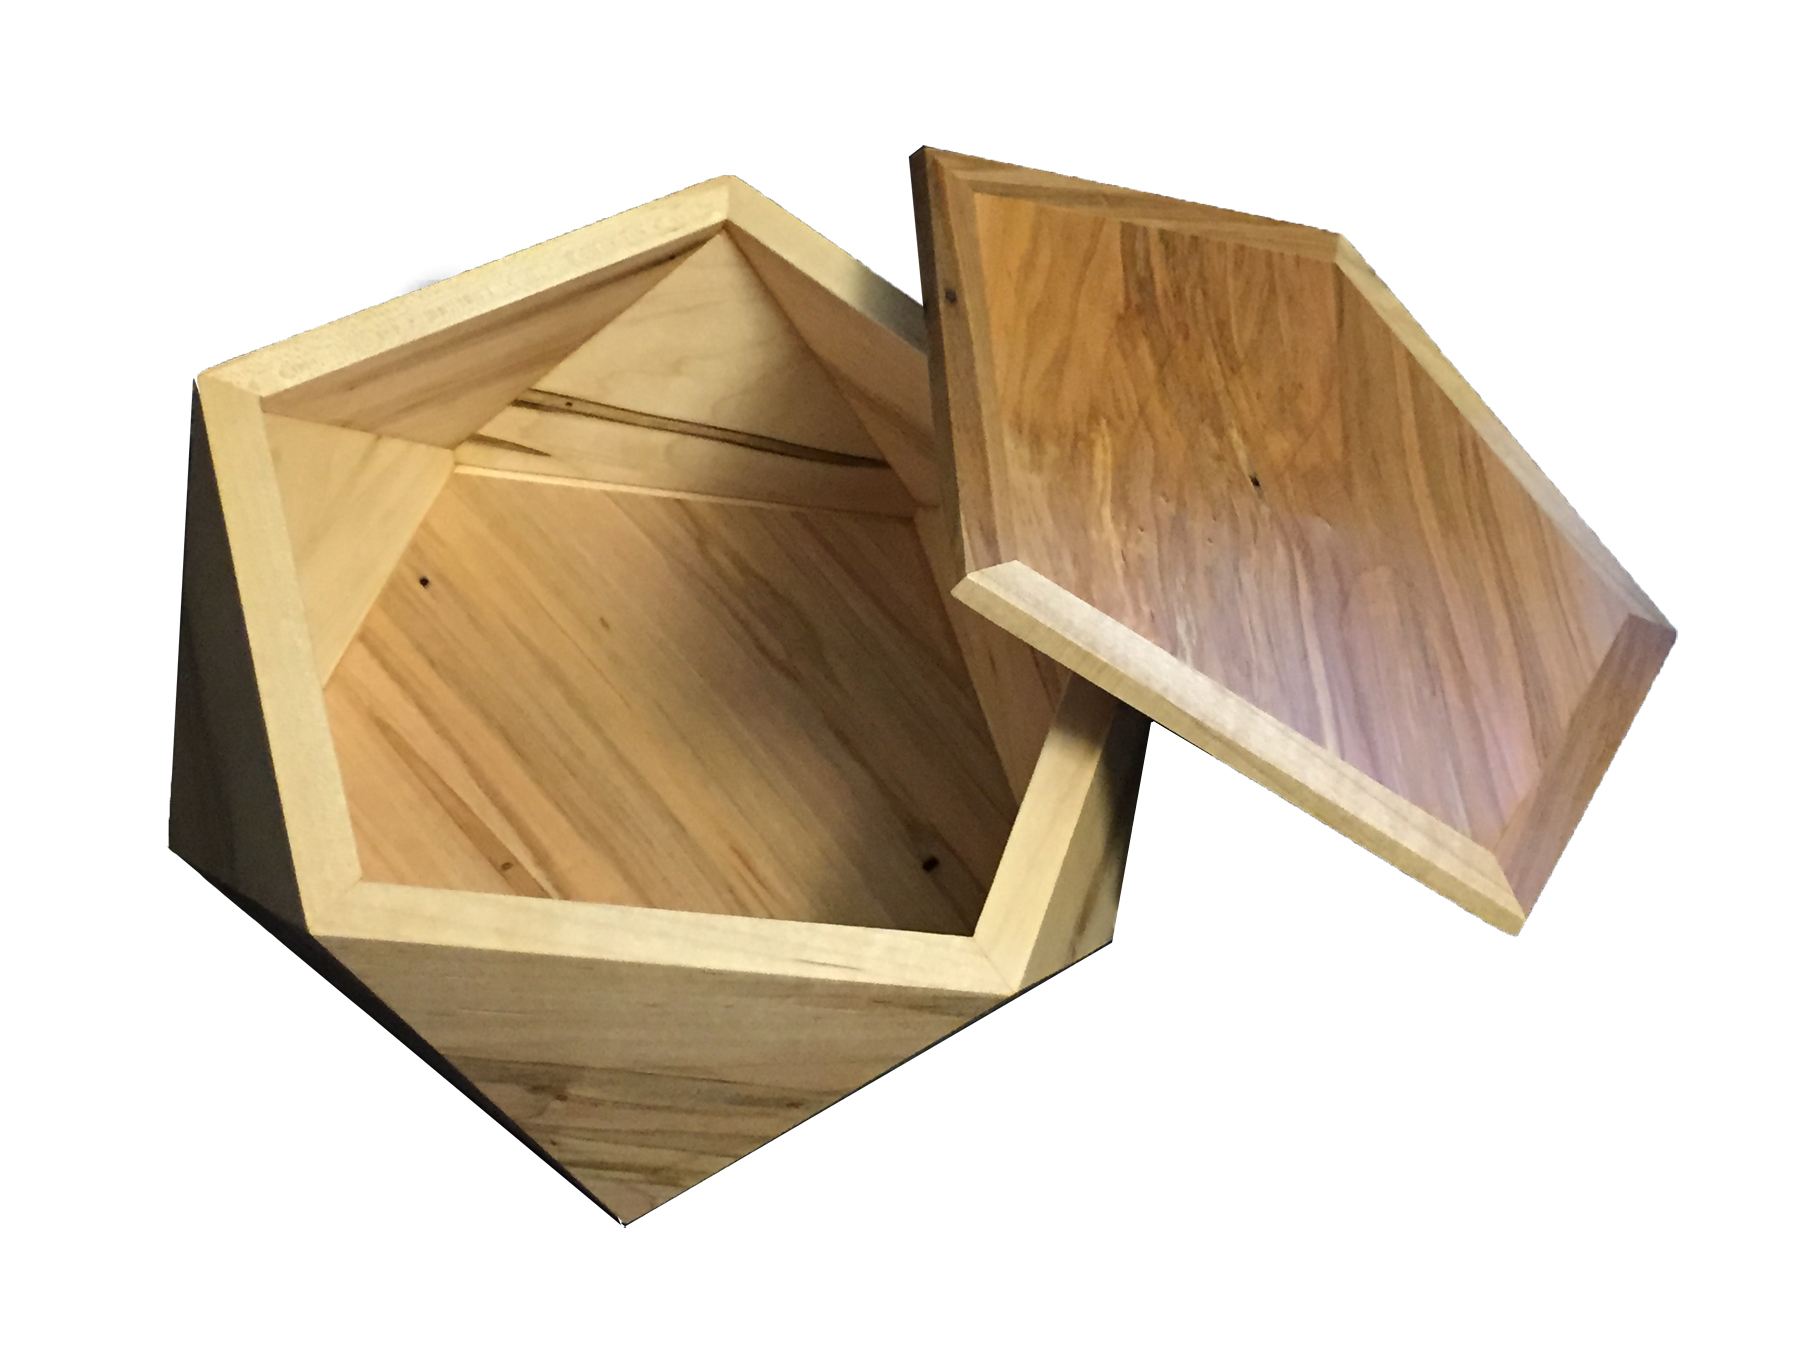 Pentagonal Box - Ambrosia Maple